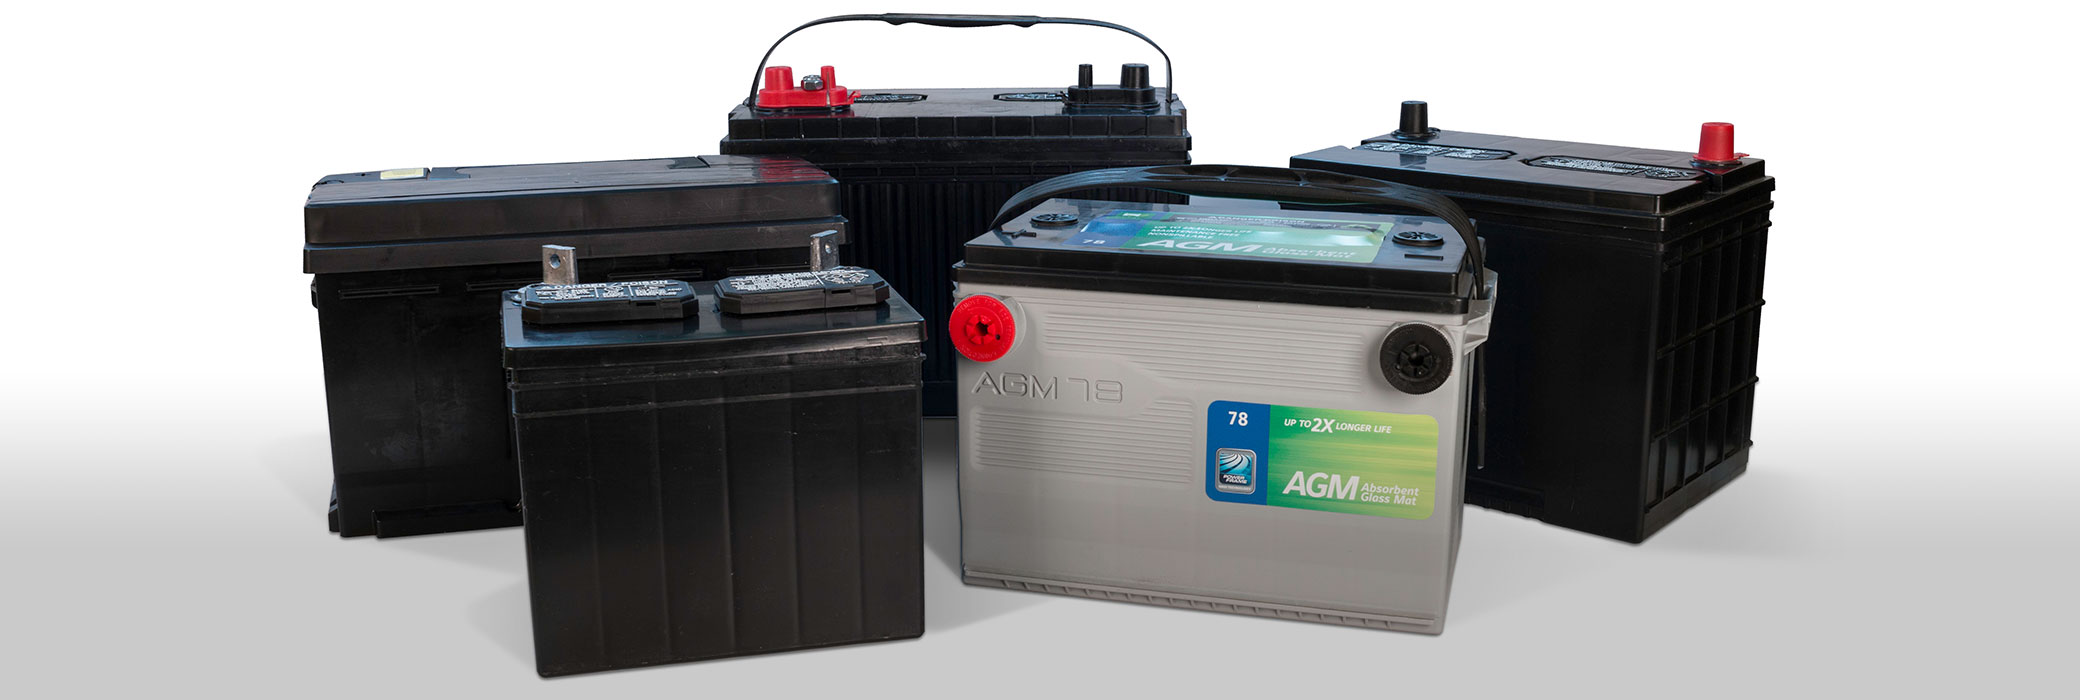 Battery Group Size refers to the battery size, ratings and terminal locations.